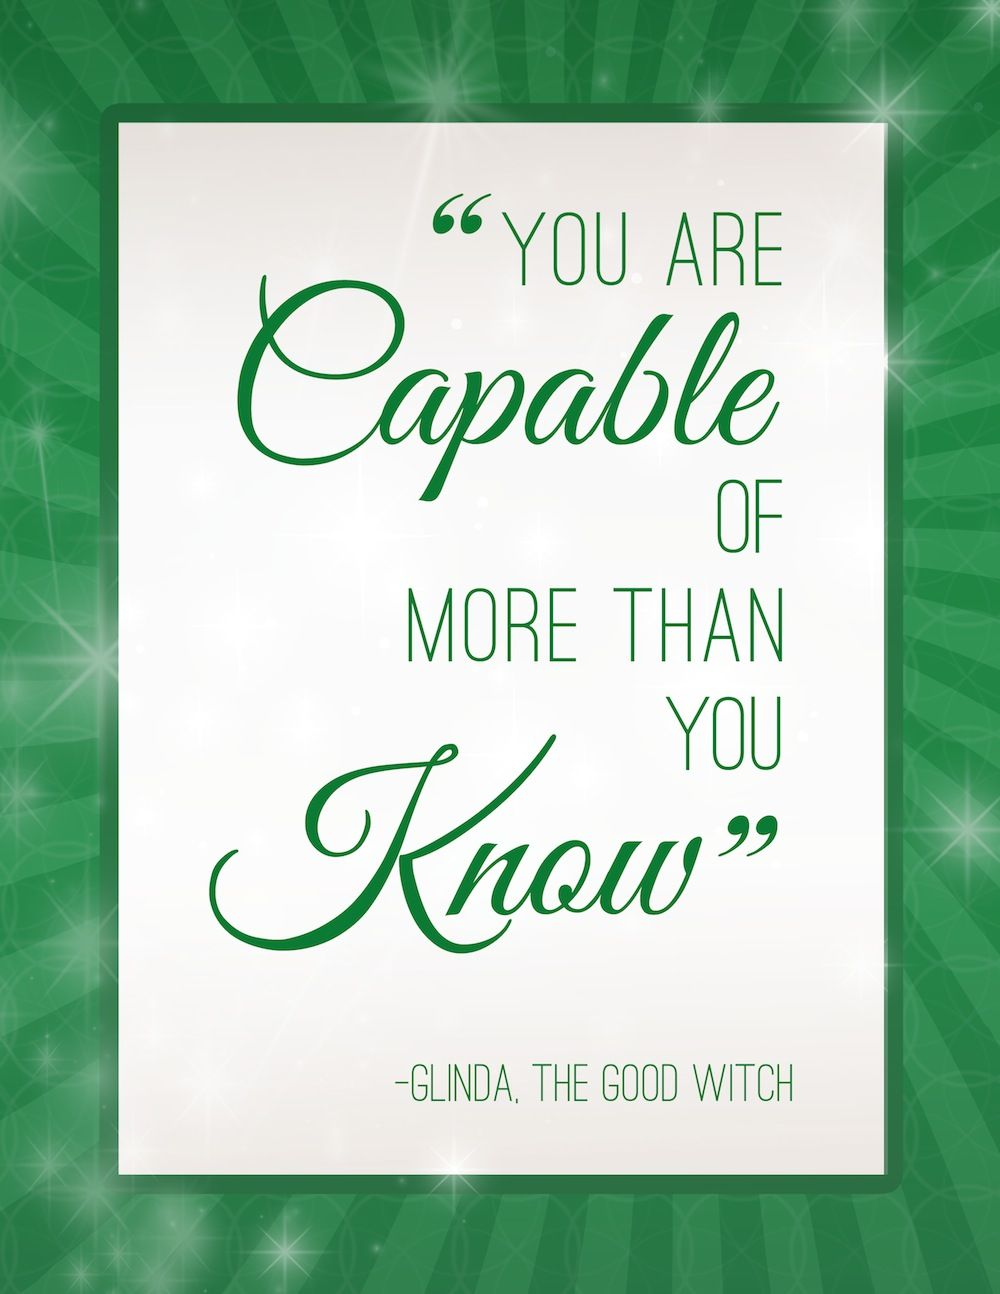 Wizard of oz quotes - Studio 5 Oz Inspiration For The Home Wicked Quoteswizard